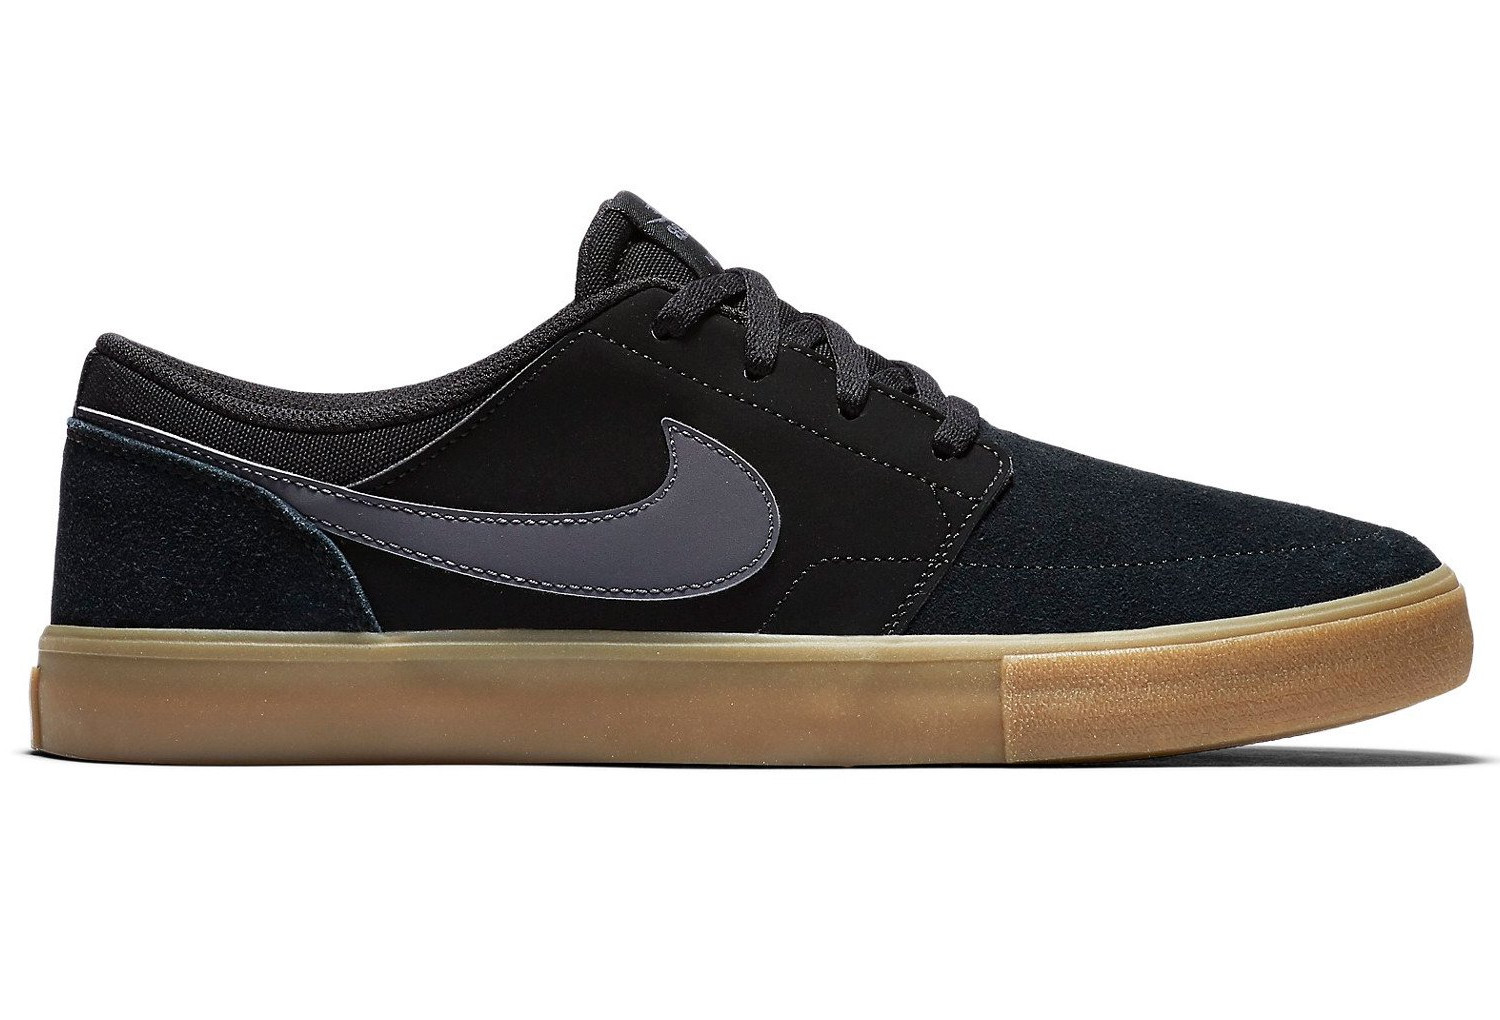 Nike SB Solarsoft Portmore II Chaussure - light british tan